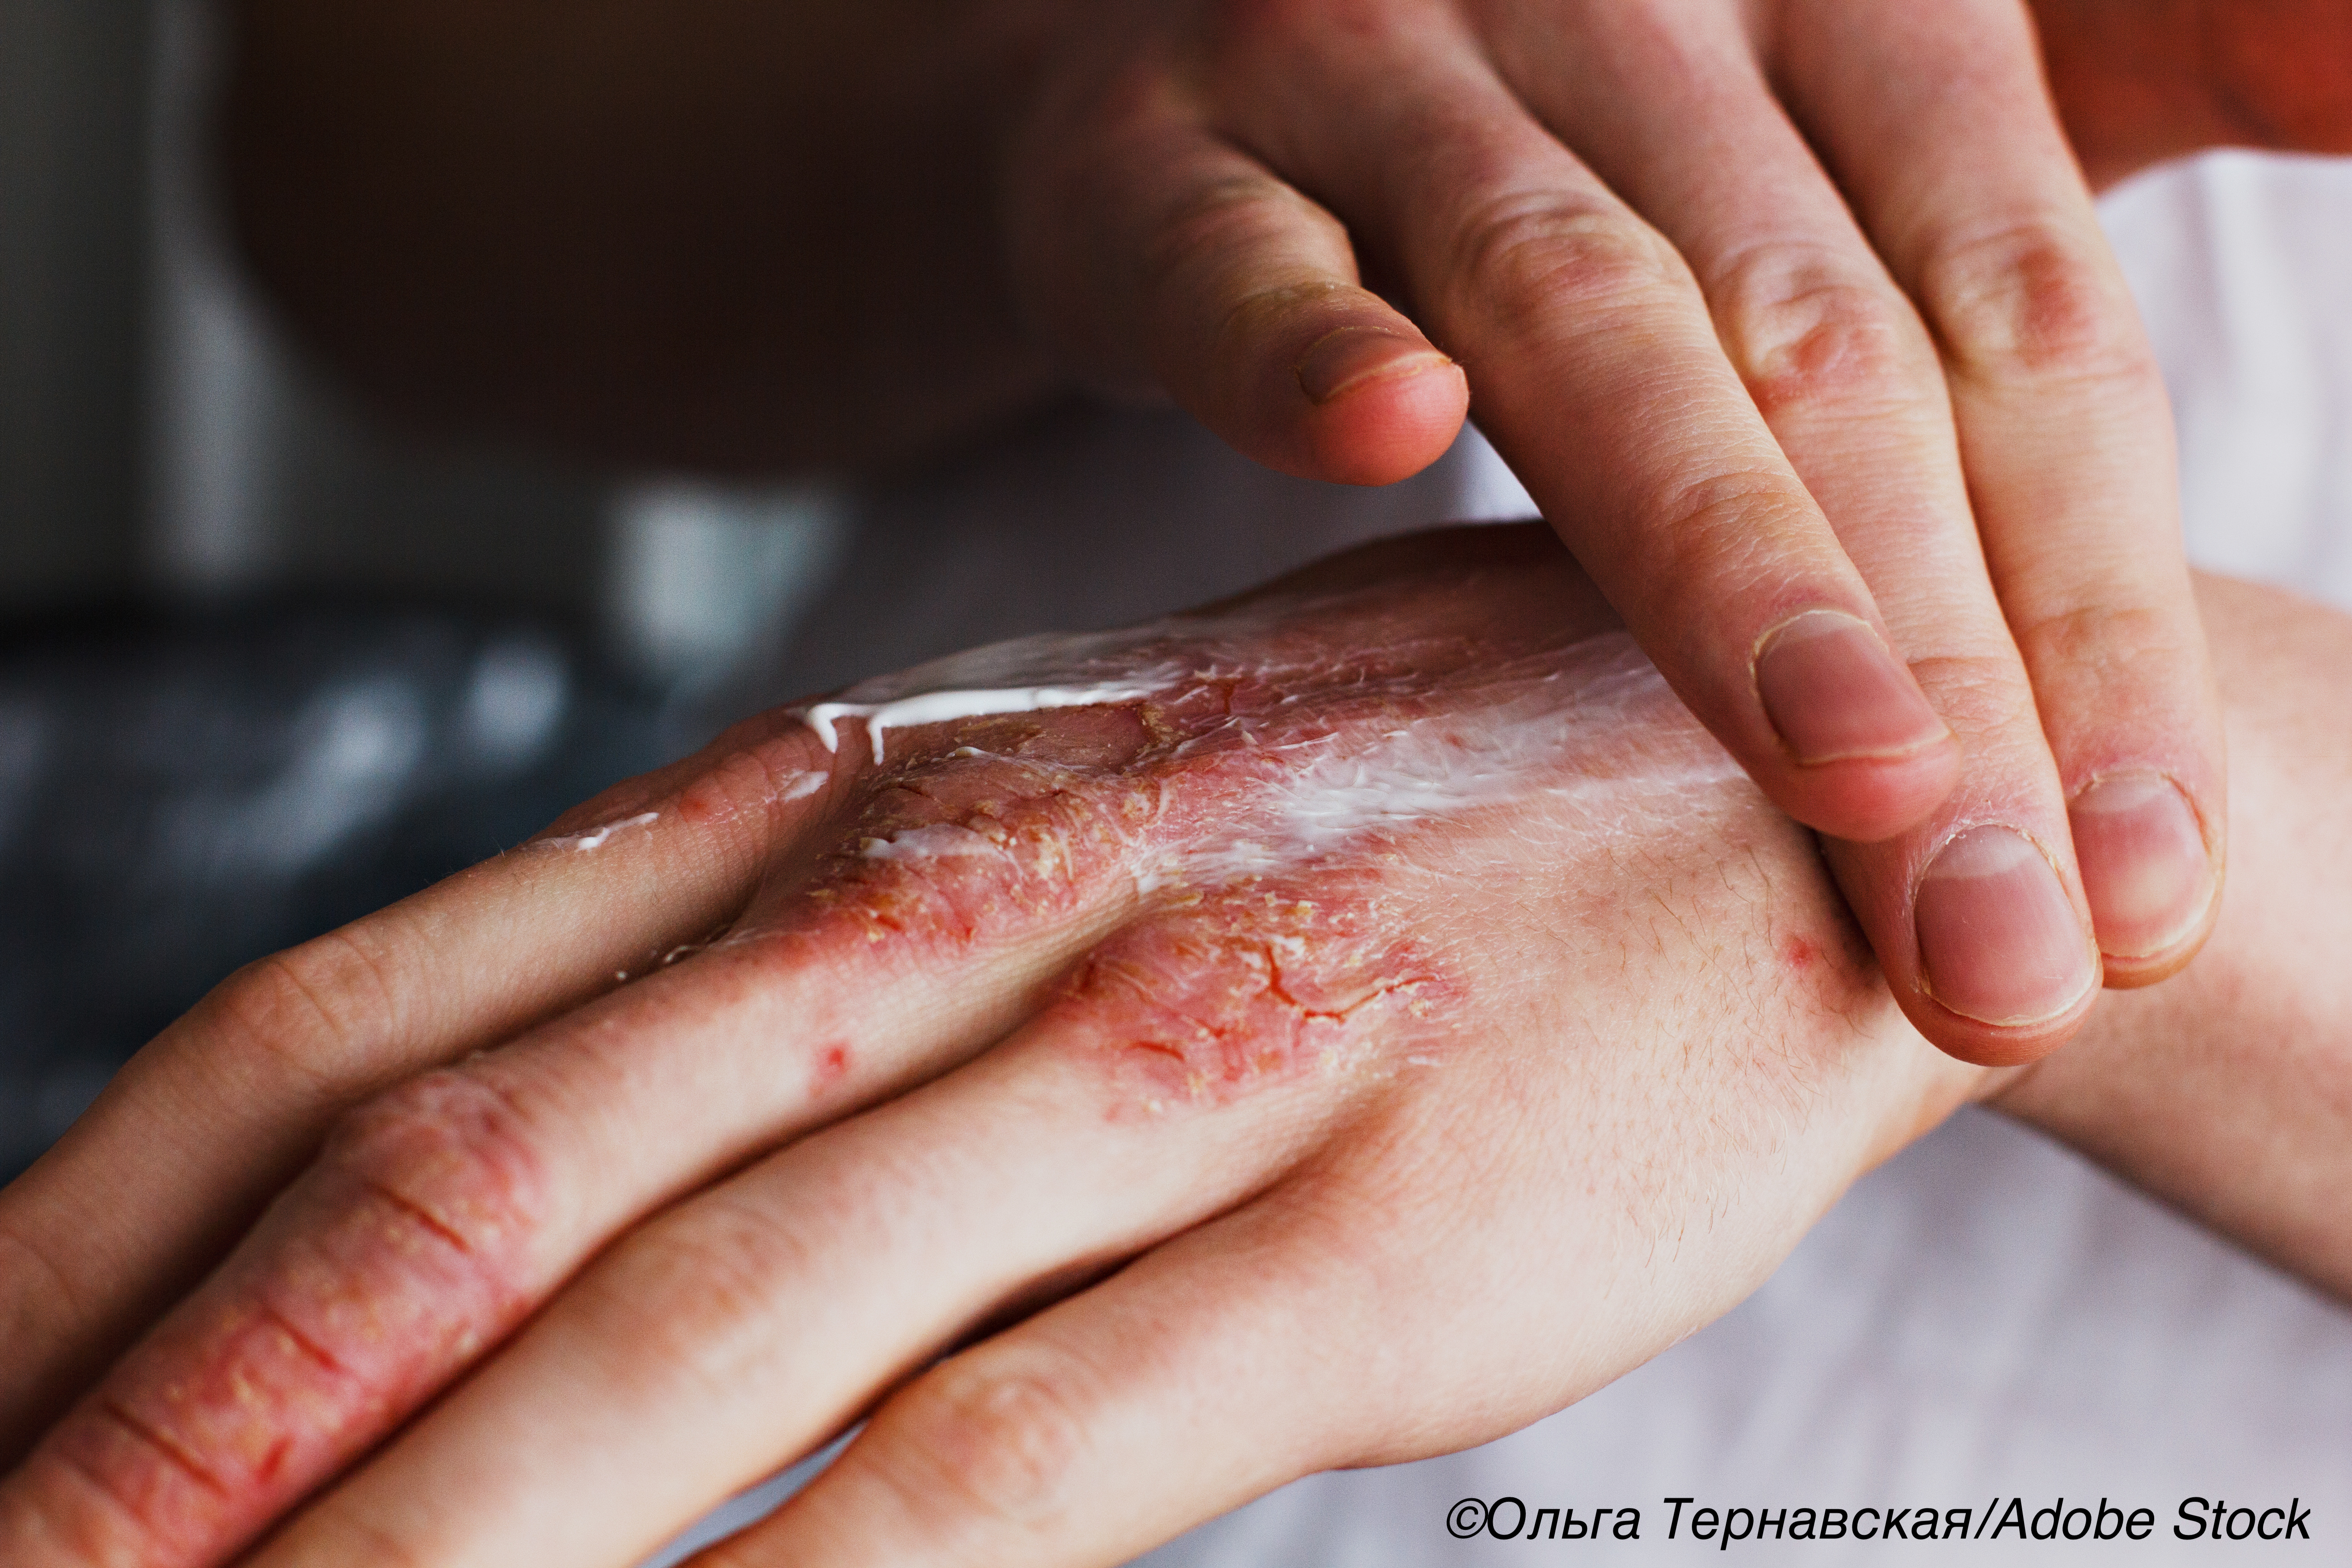 Topical Calcineurin Inhibitors for Atopic Dermatitis Safe